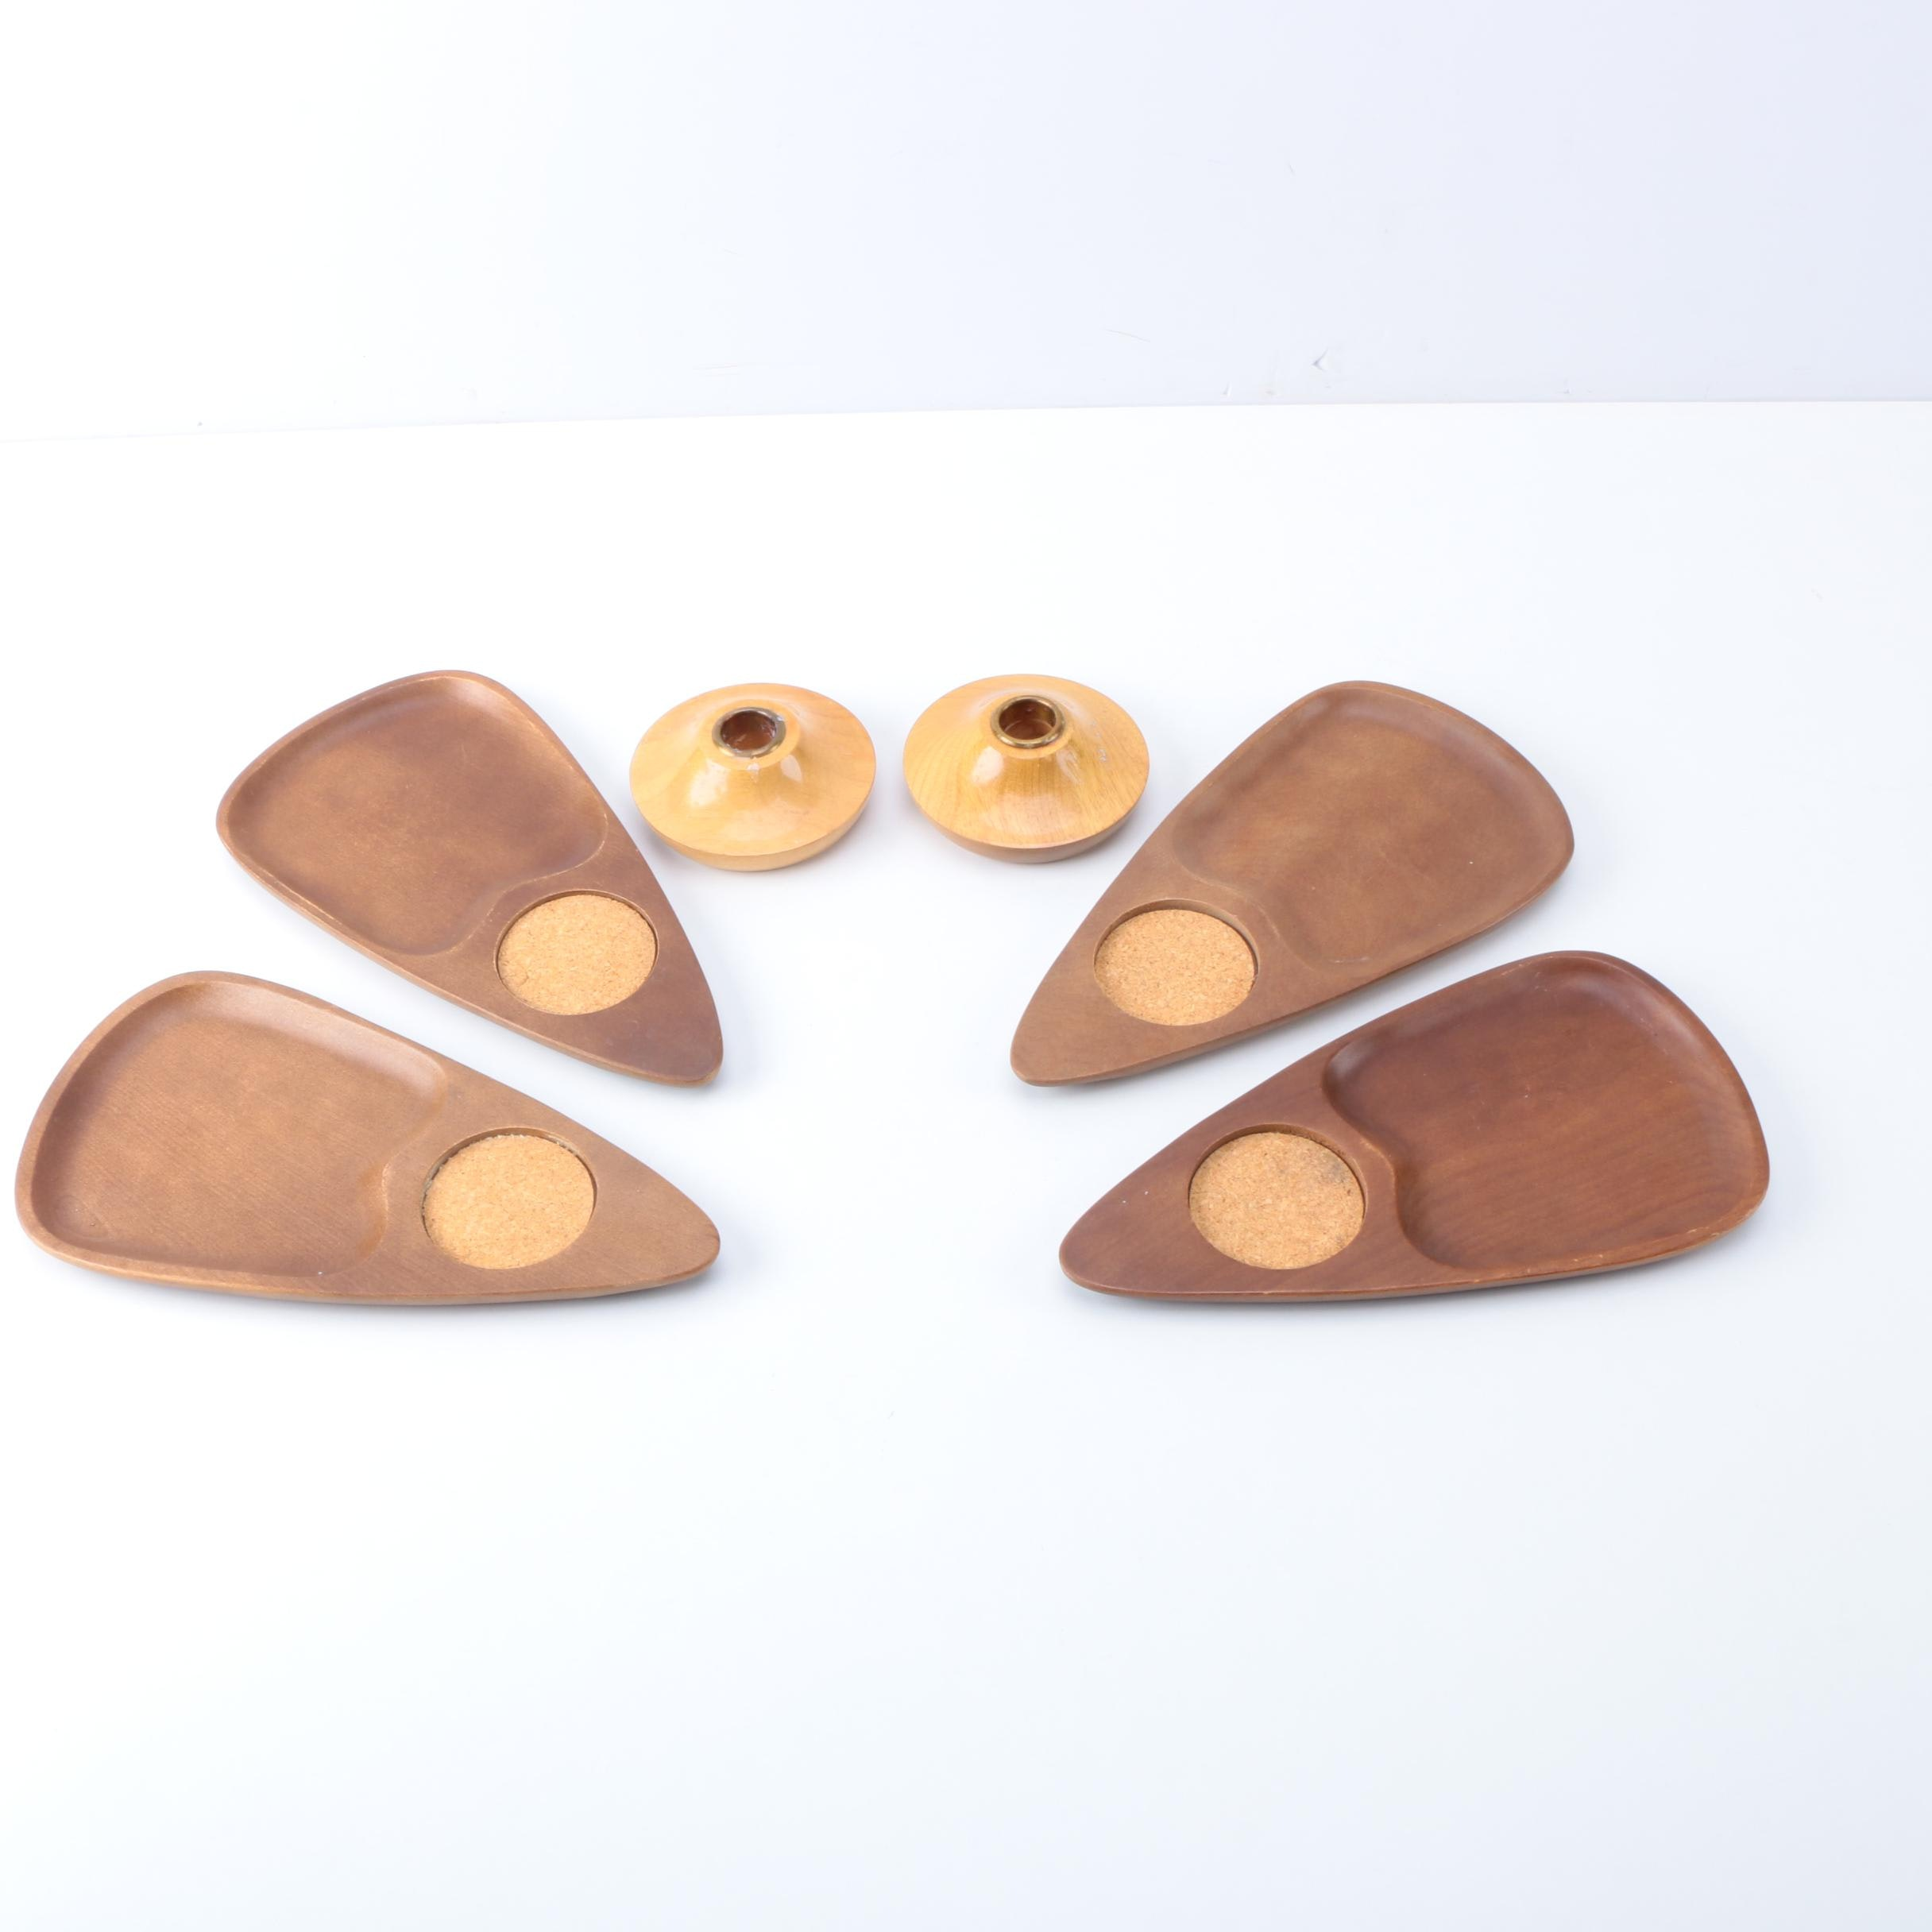 Mid Century Modern Wood Snack Plates and Candle Holders